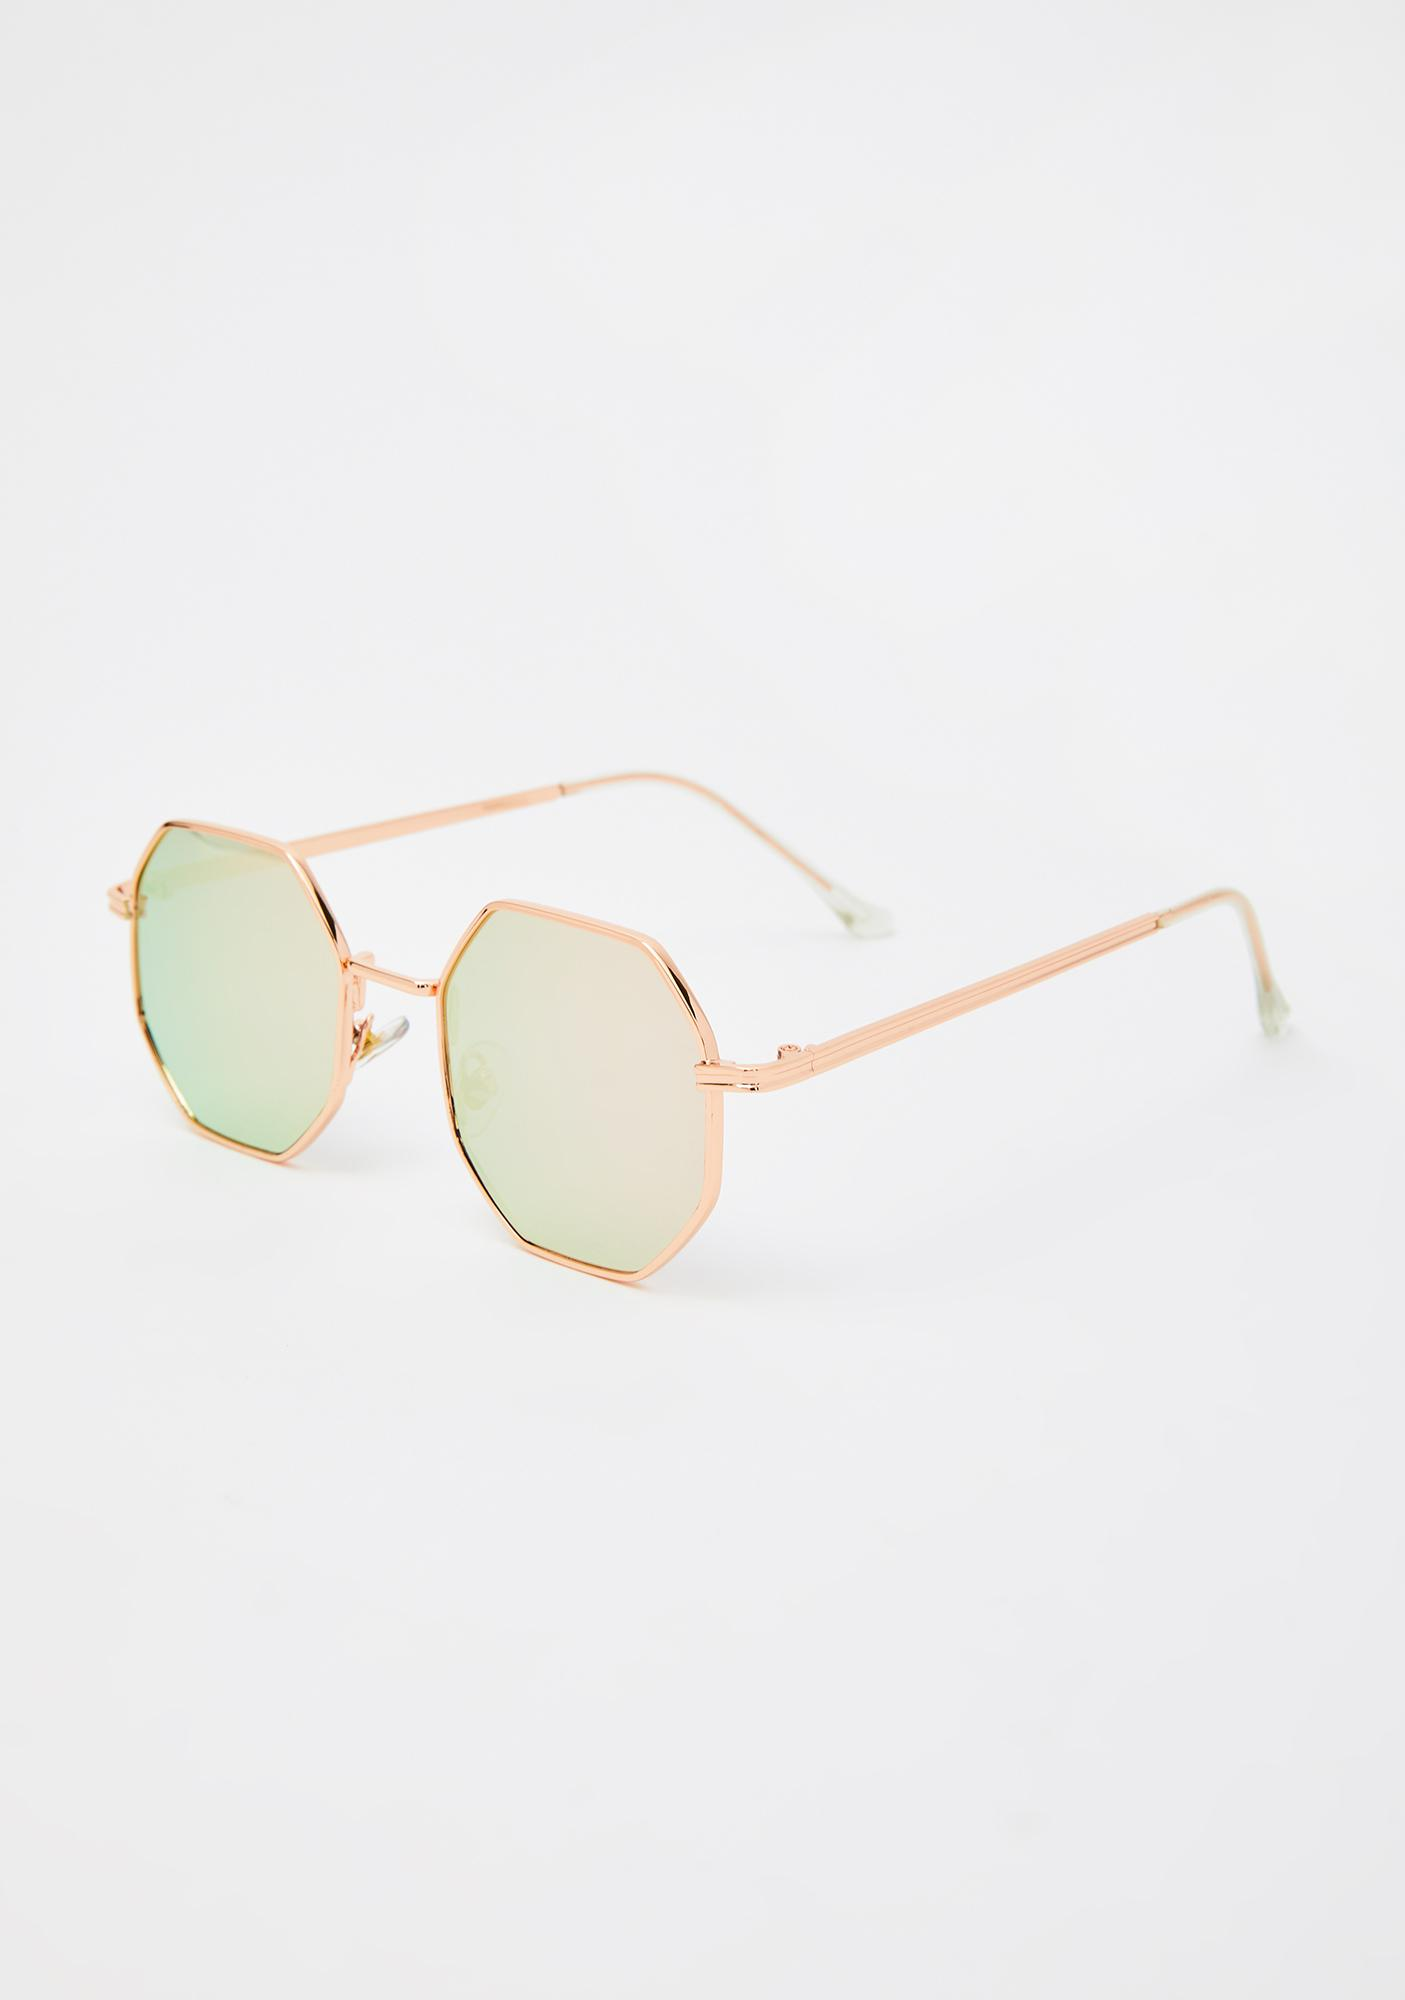 Champagne Flashy Girl Octagon Sunglasses